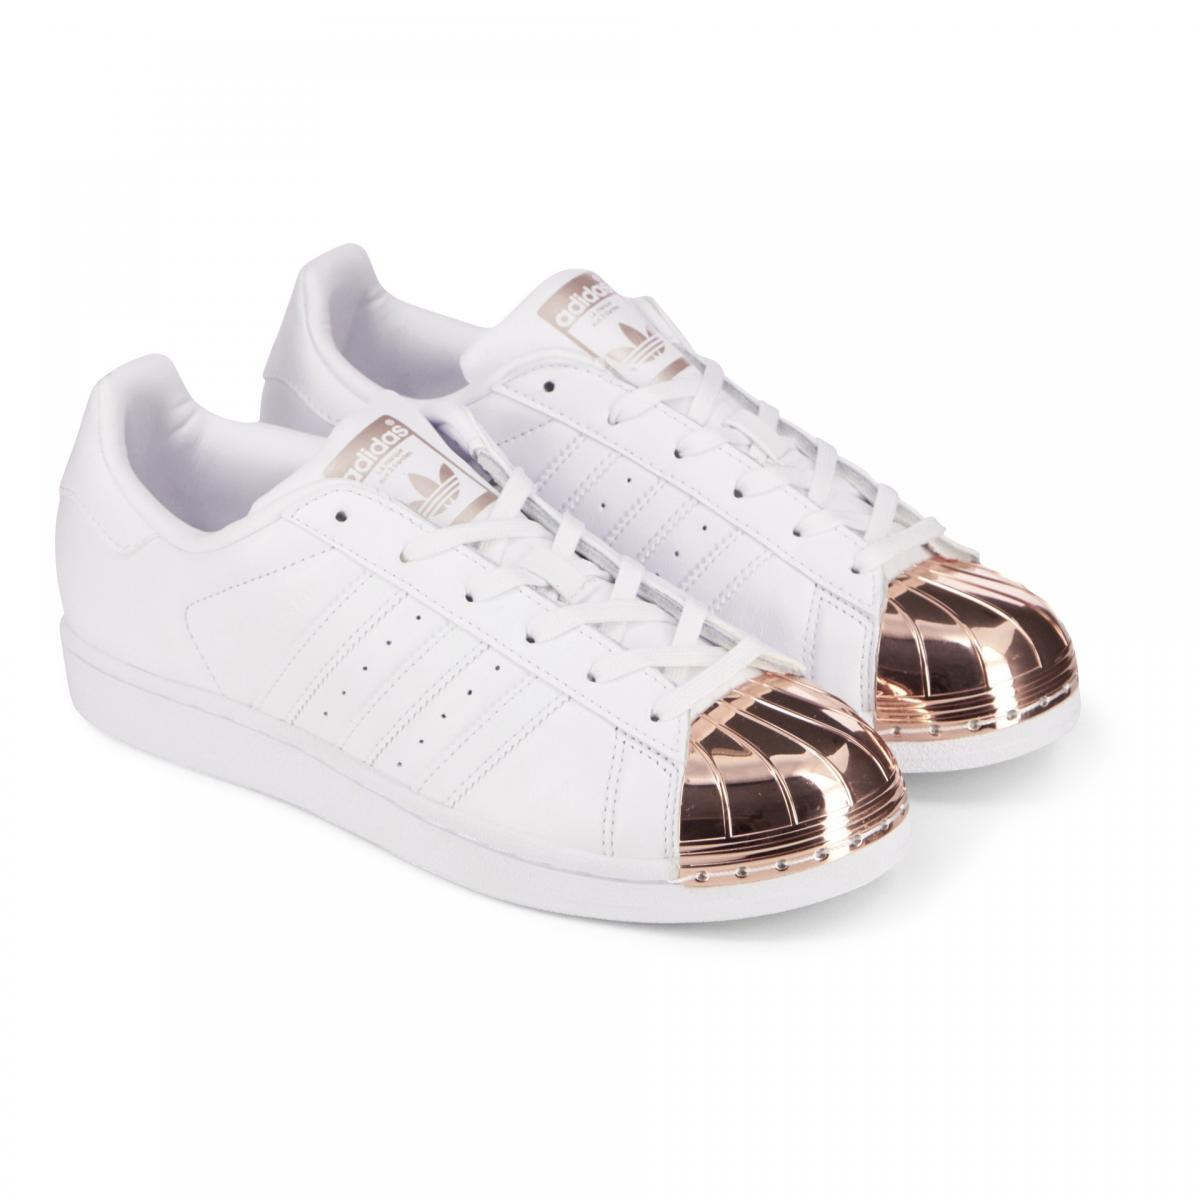 adidas superstar blanc et bronze